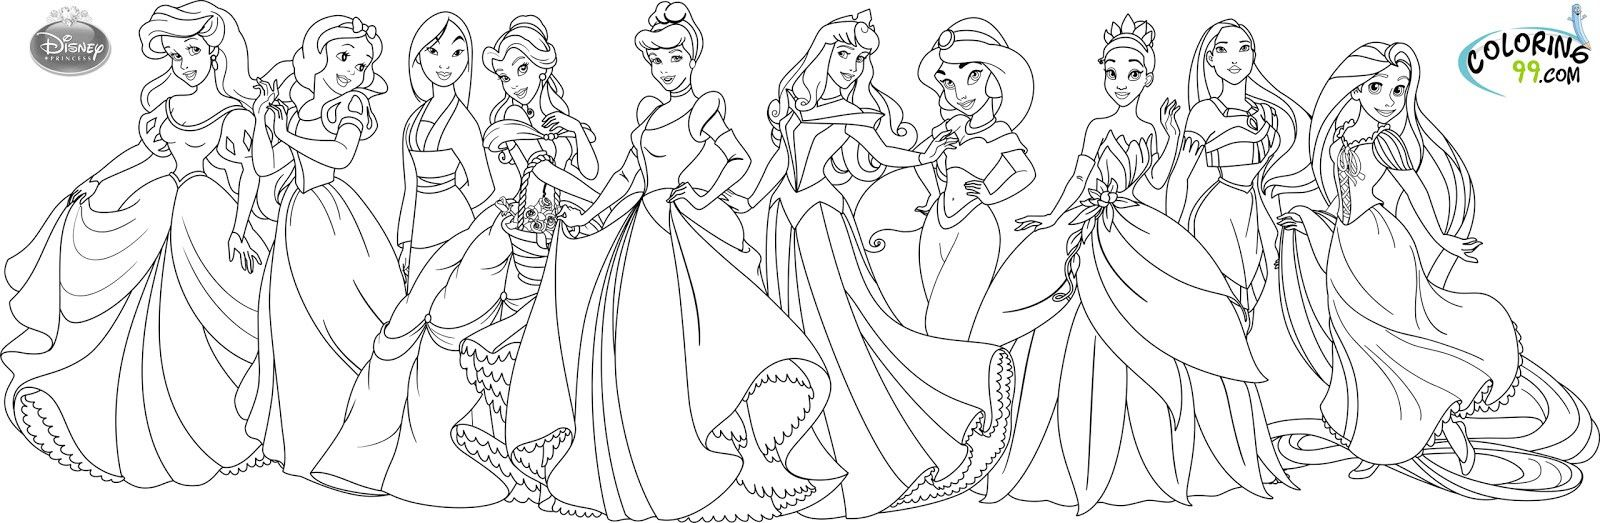 Disney Princess Coloring Sheets Online Display